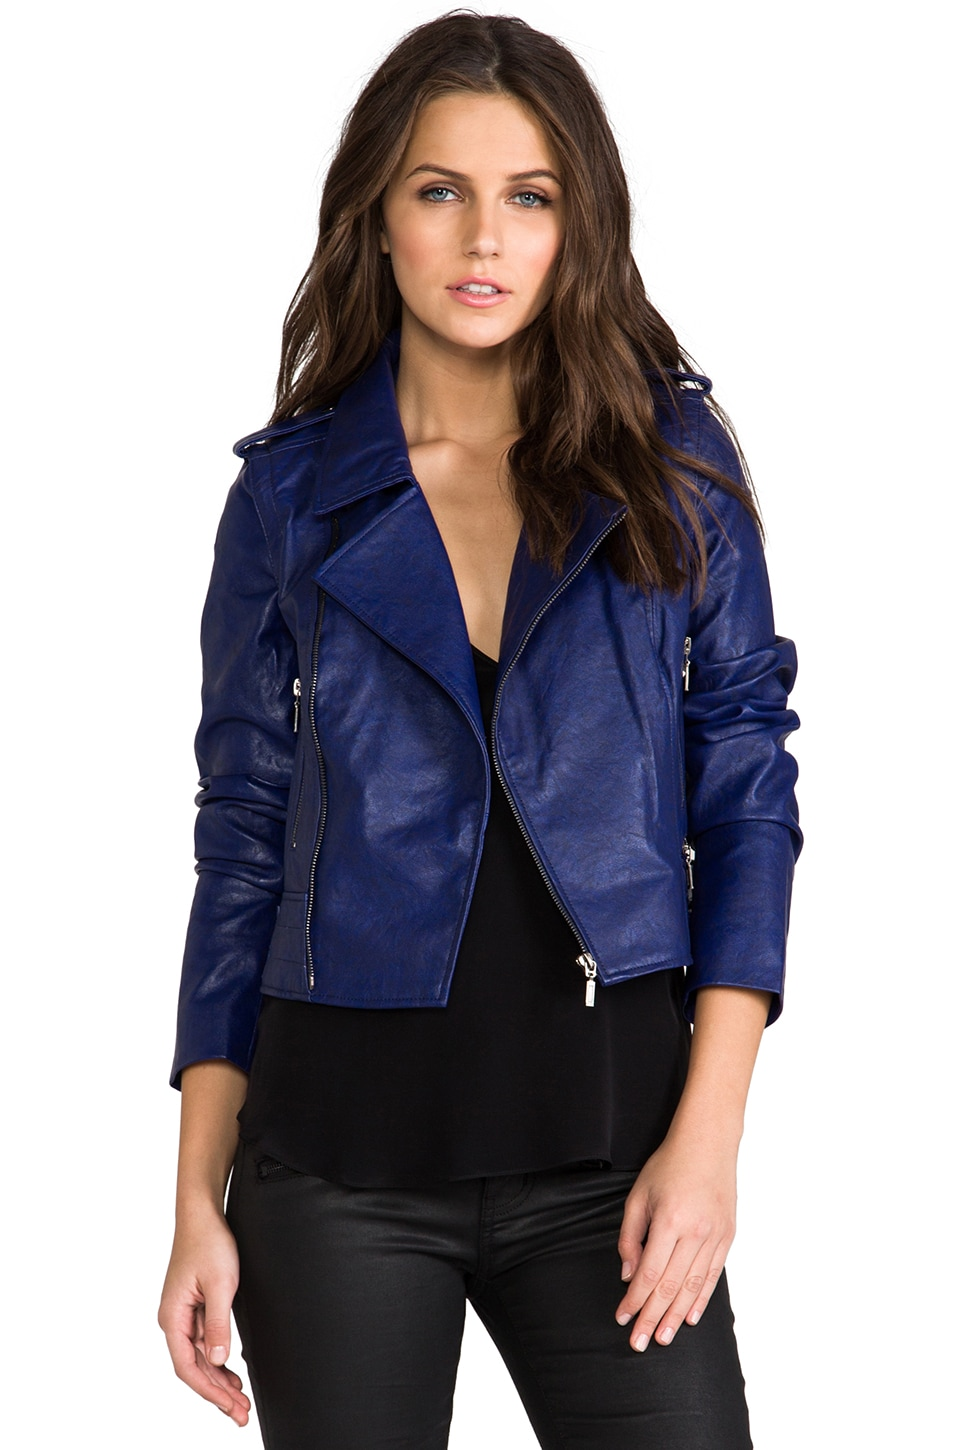 Lovers + Friends All Day Vegan Leather Moto Jacket w/ Removable Sleeves in Navy